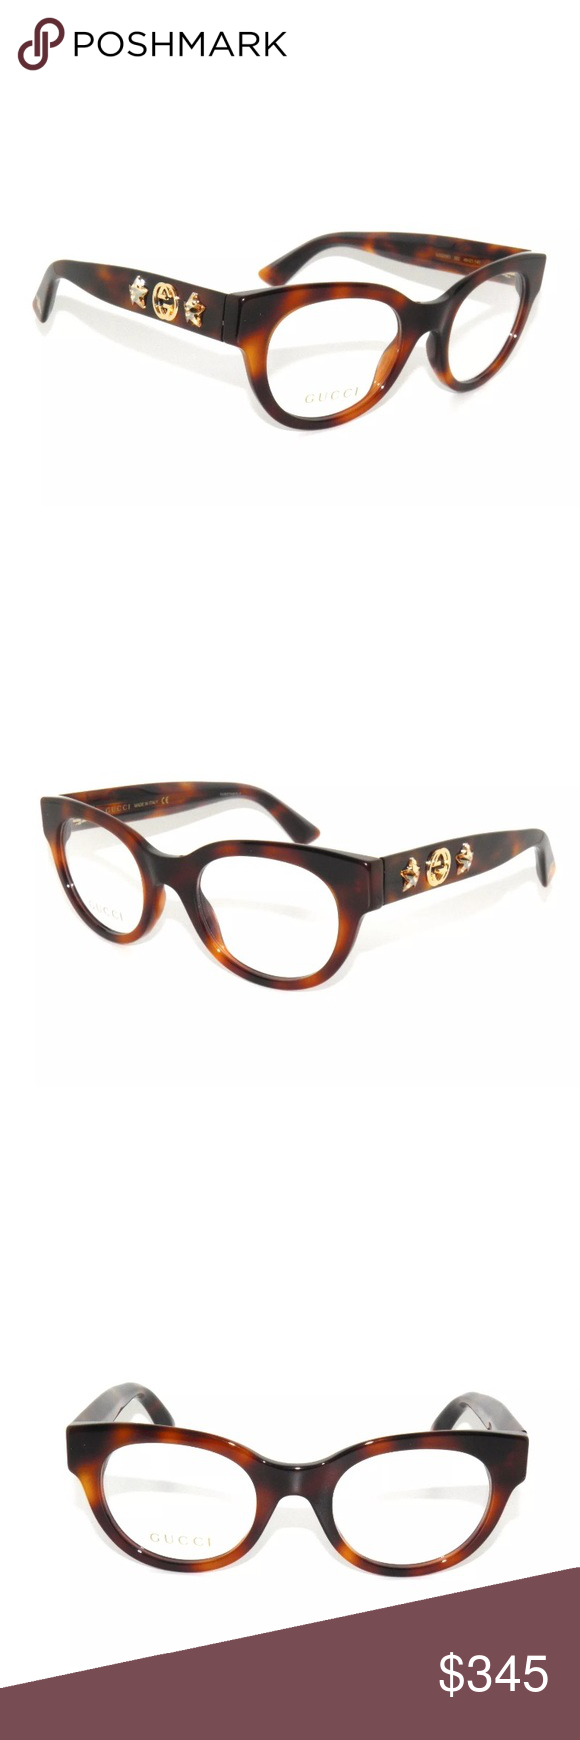 f1d600f17a7e Gucci sunglasses brown frame 02090 Brand new Authentic Comes with case